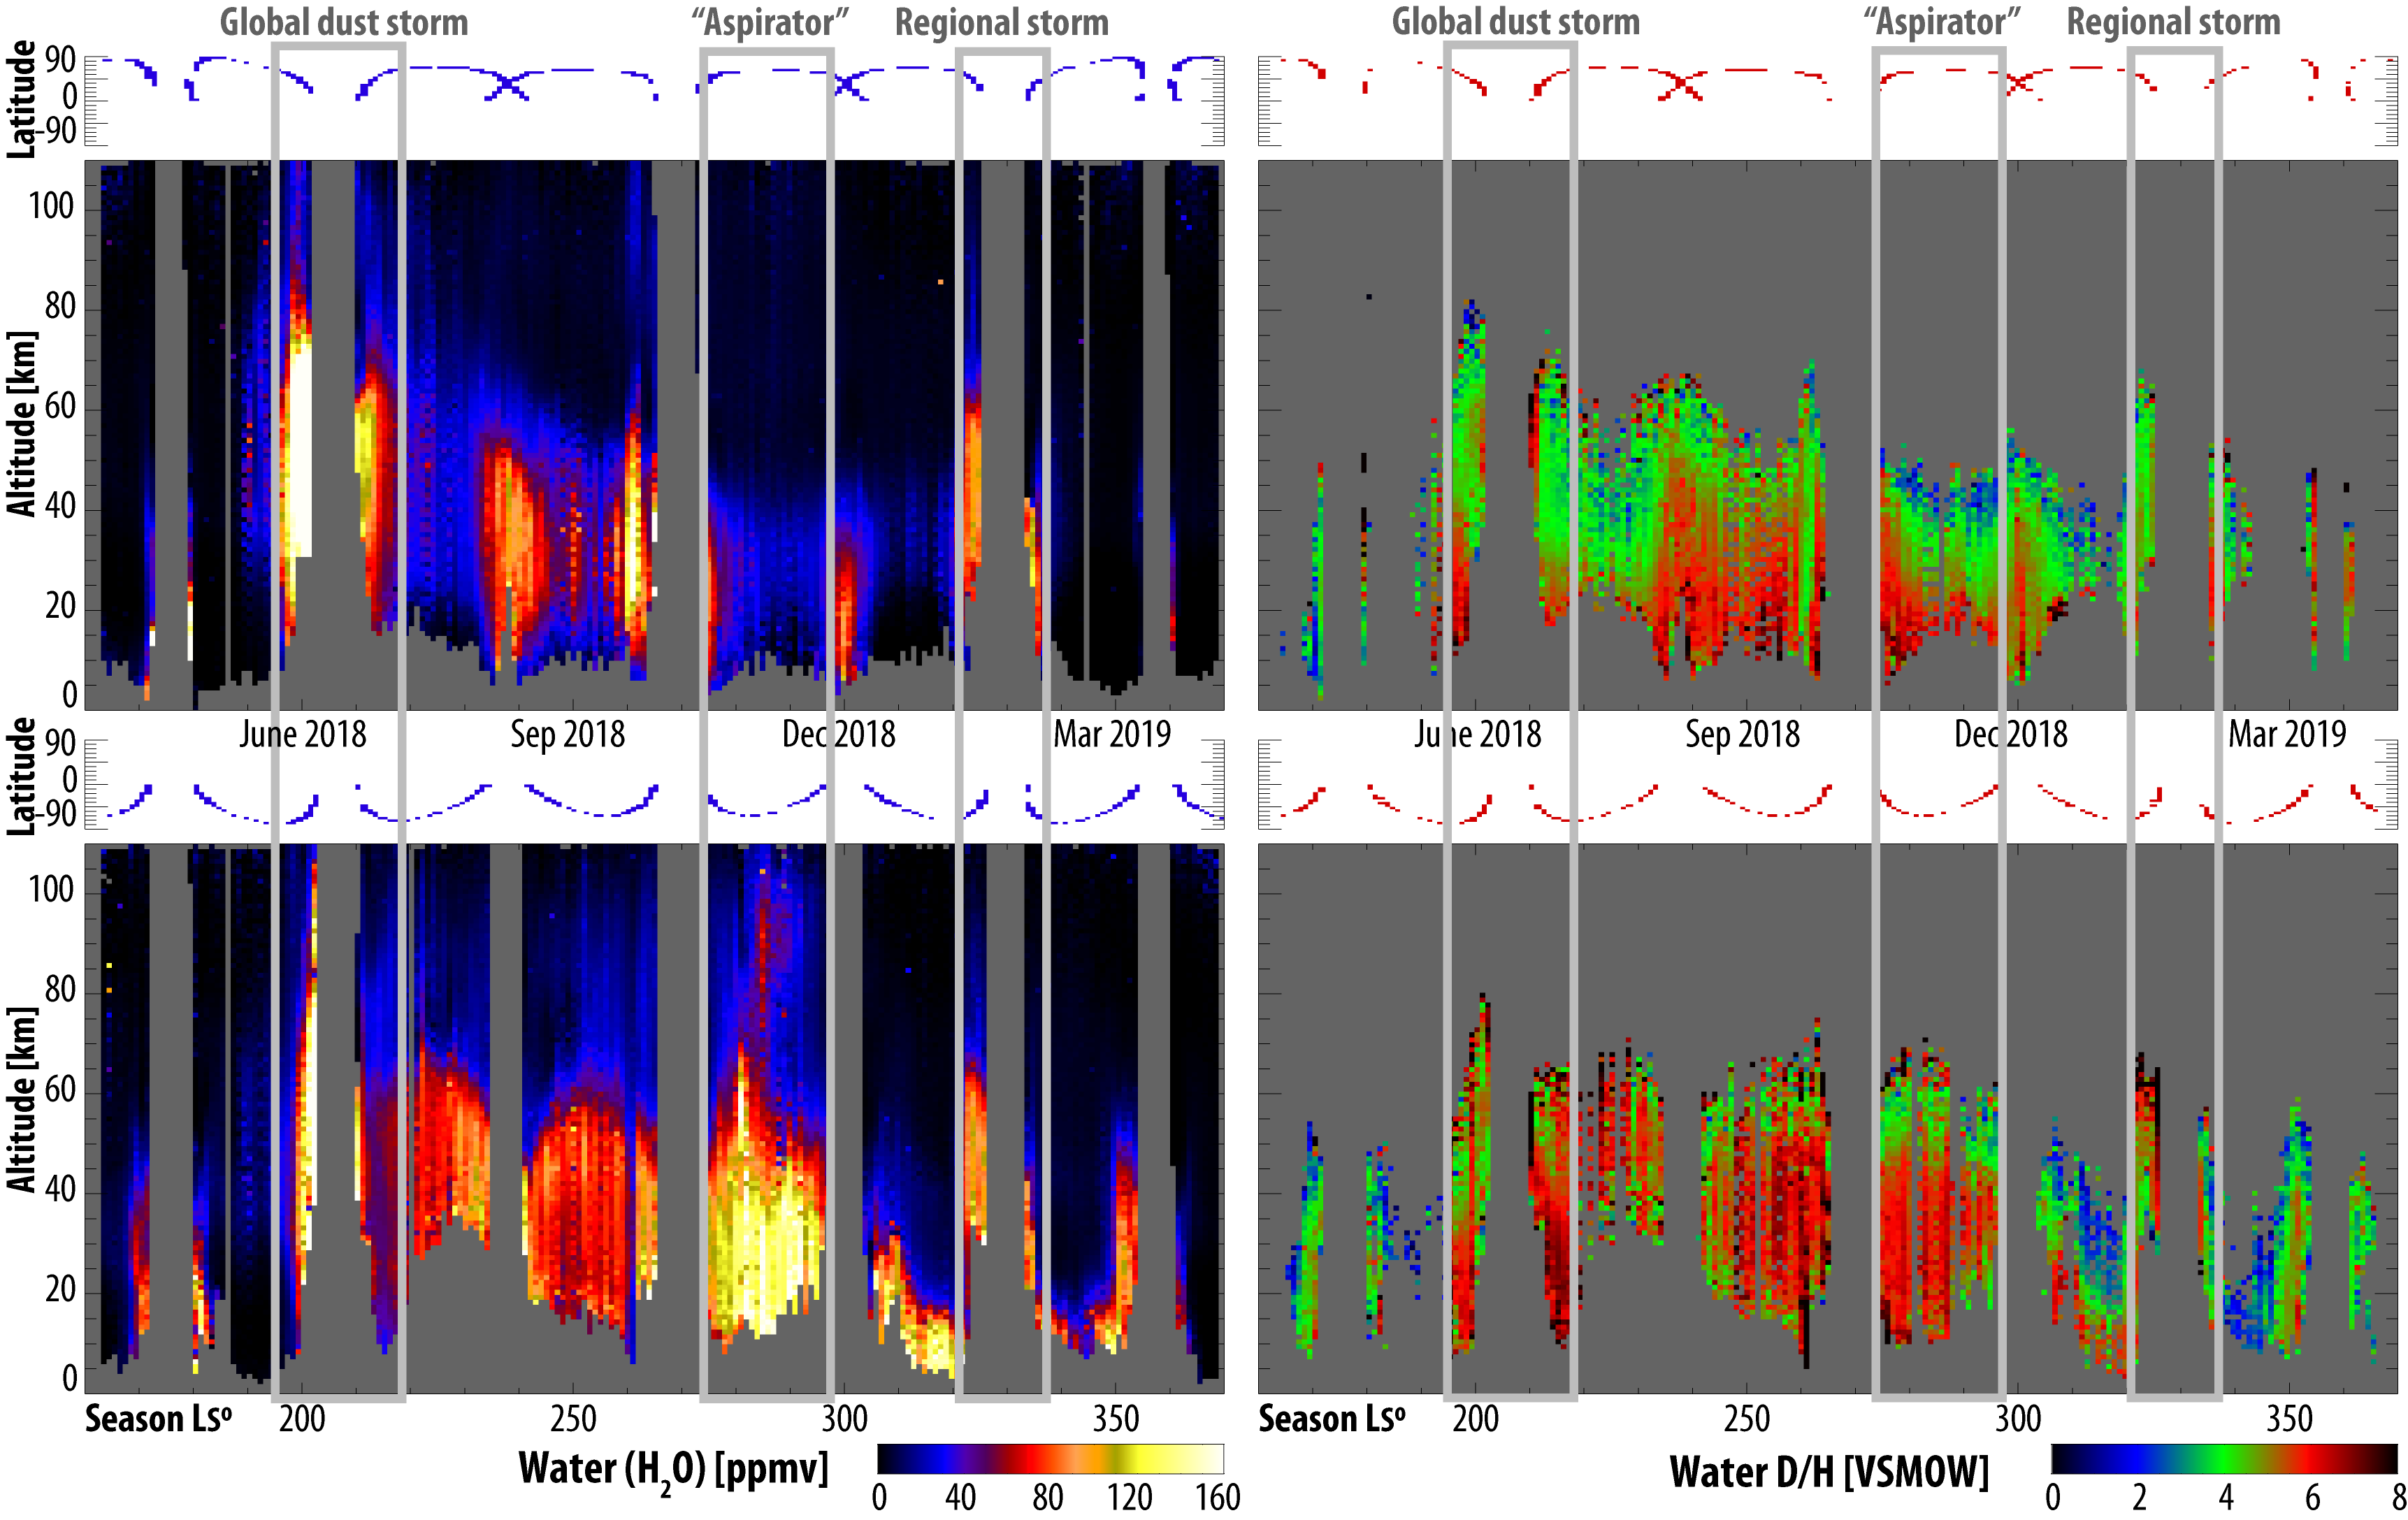 Seasonal variability of water in the martian atmosphere